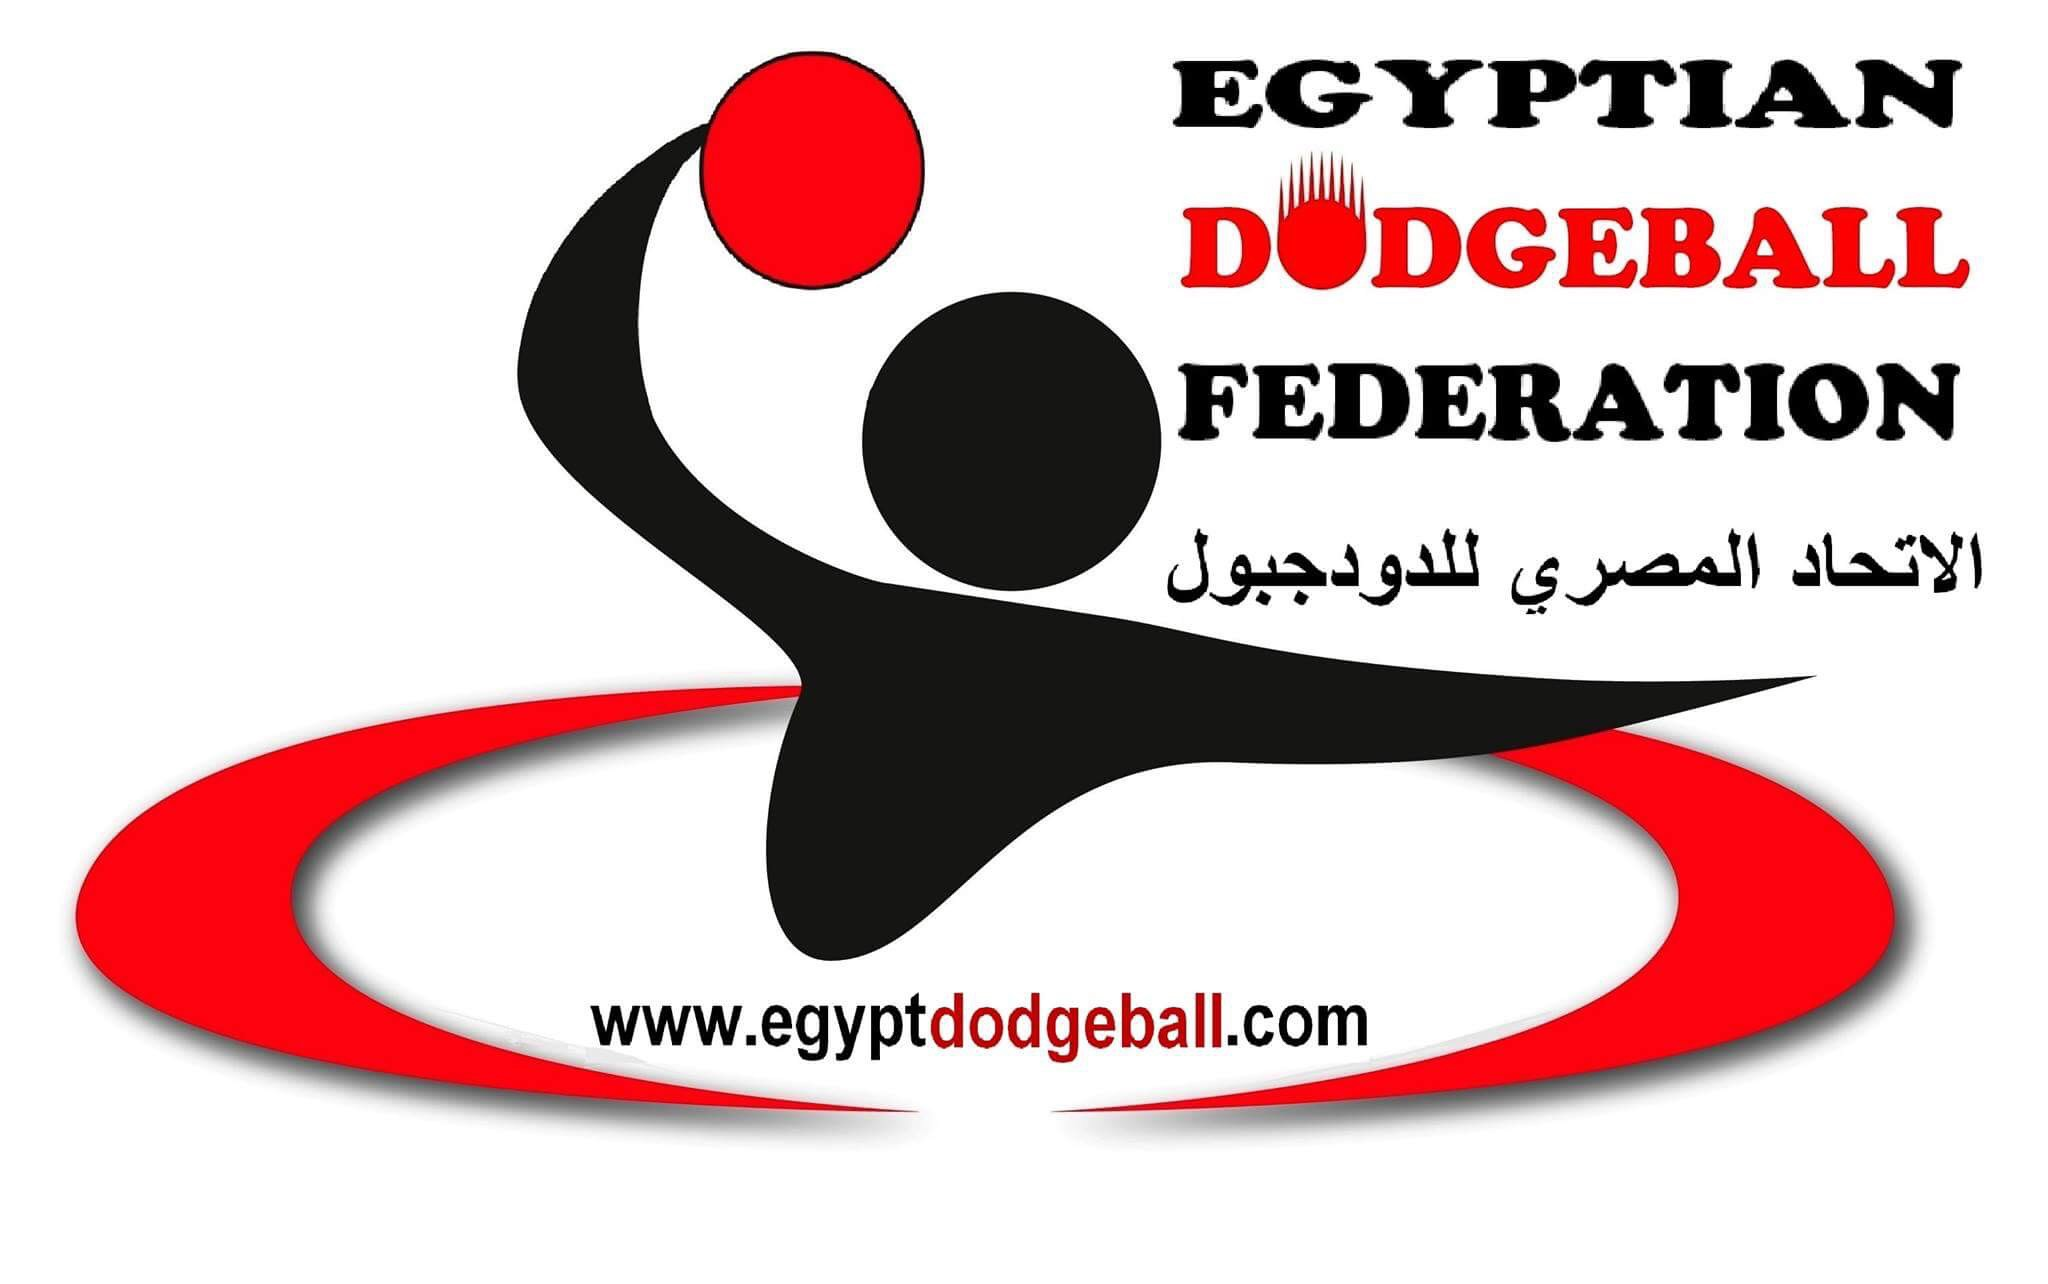 Egyptian Dodgeball federation Logo